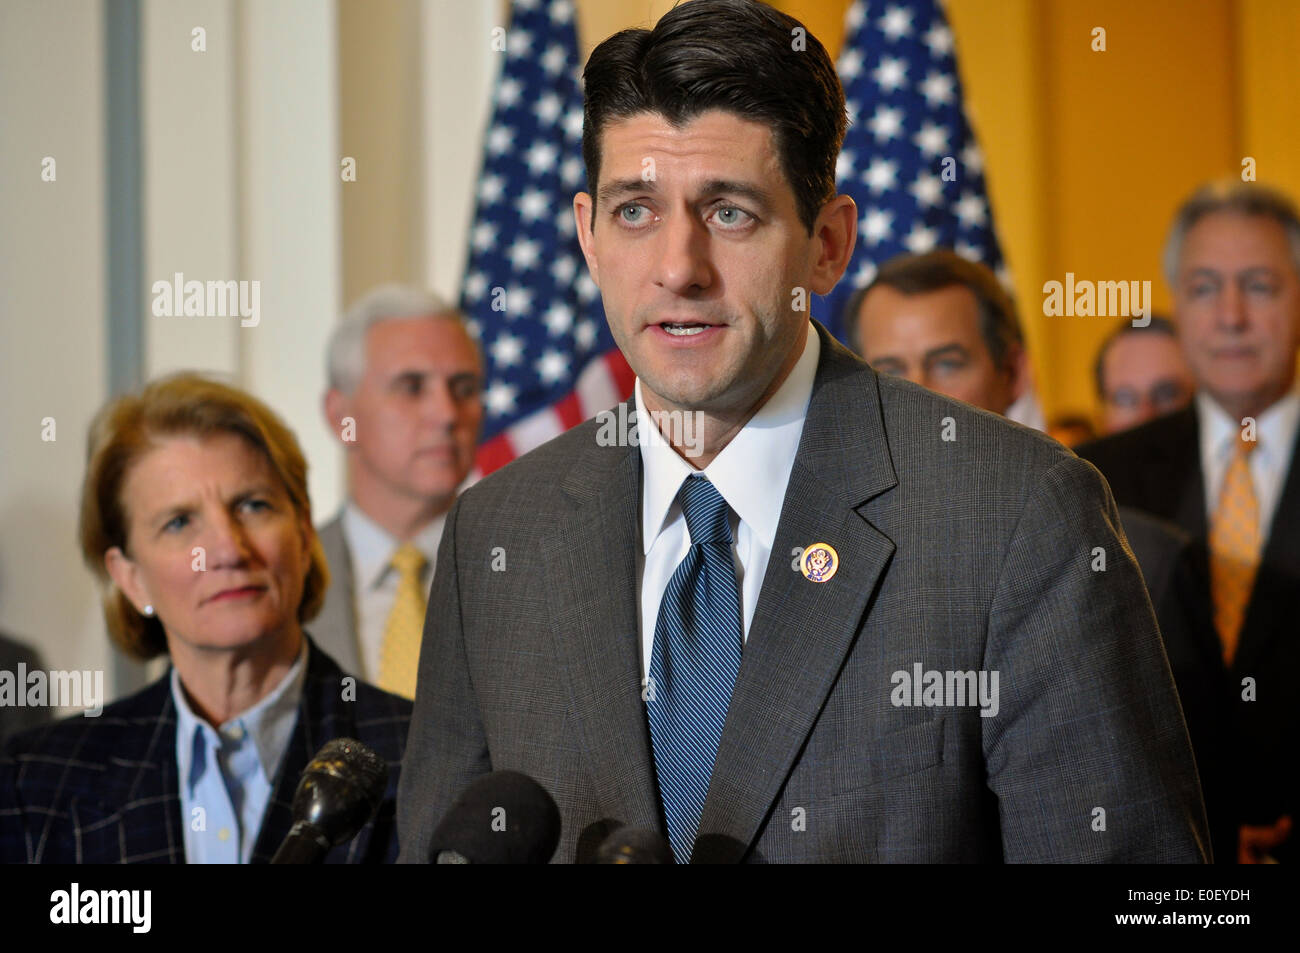 US House member Rep. Paul Ryan holds a press conference about the federal budget stalemate March 20, 2010 in Washington, DC. - Stock Image